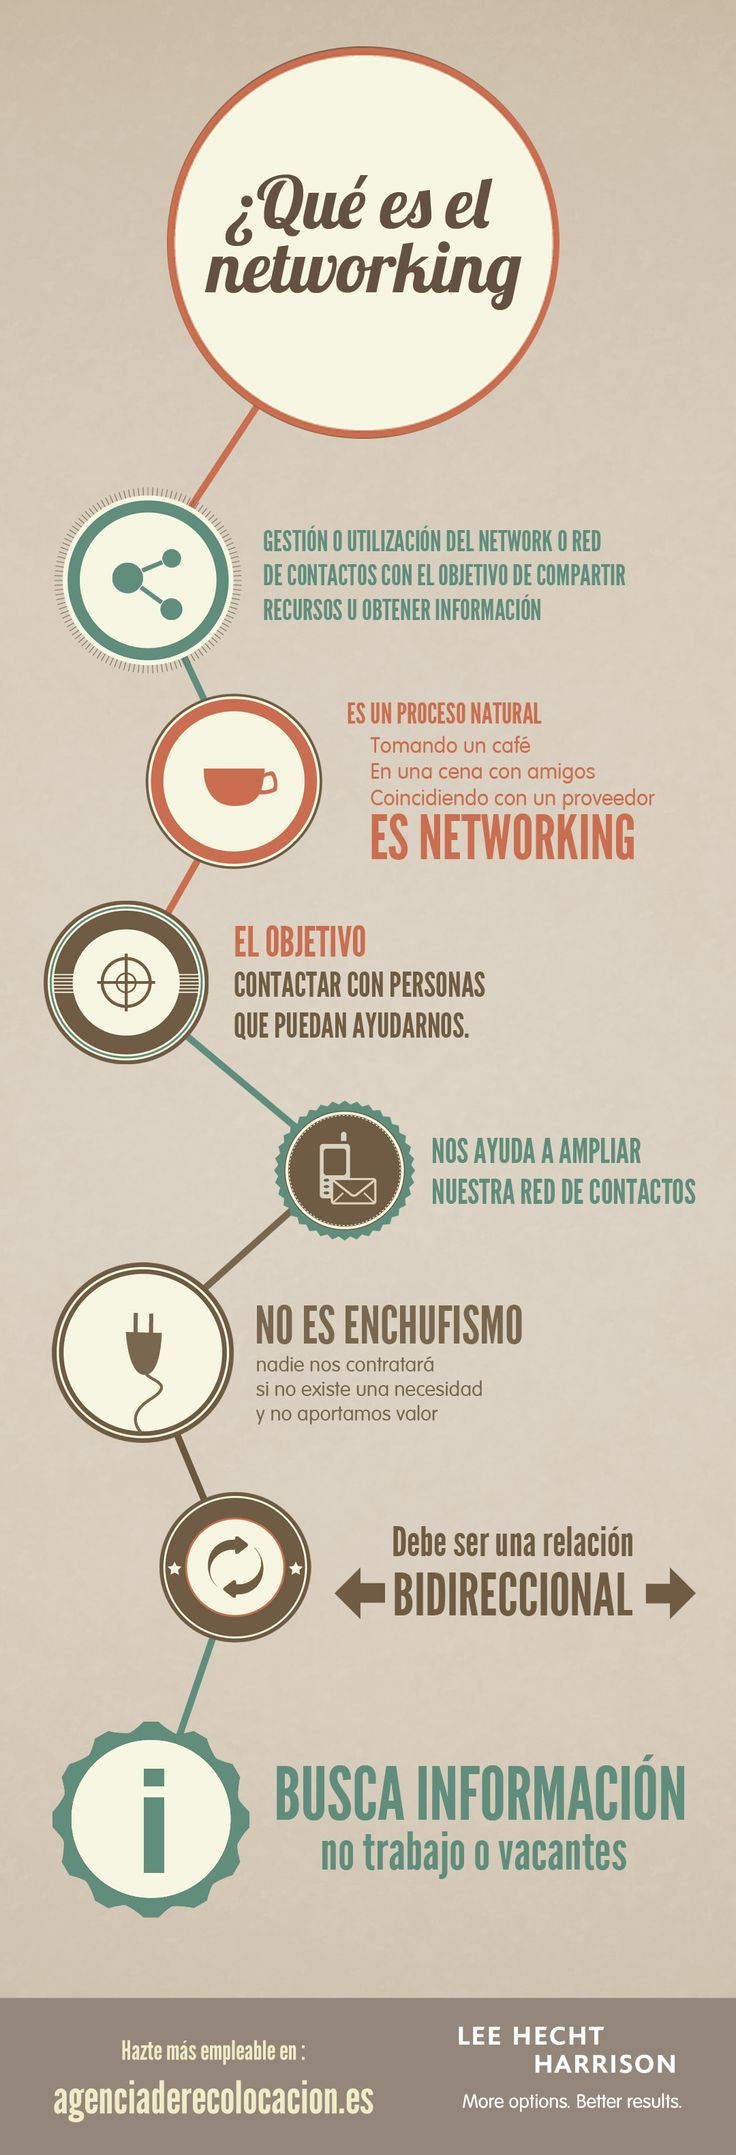 Infografia - Qué es el networking #infografia #infographic #marketing